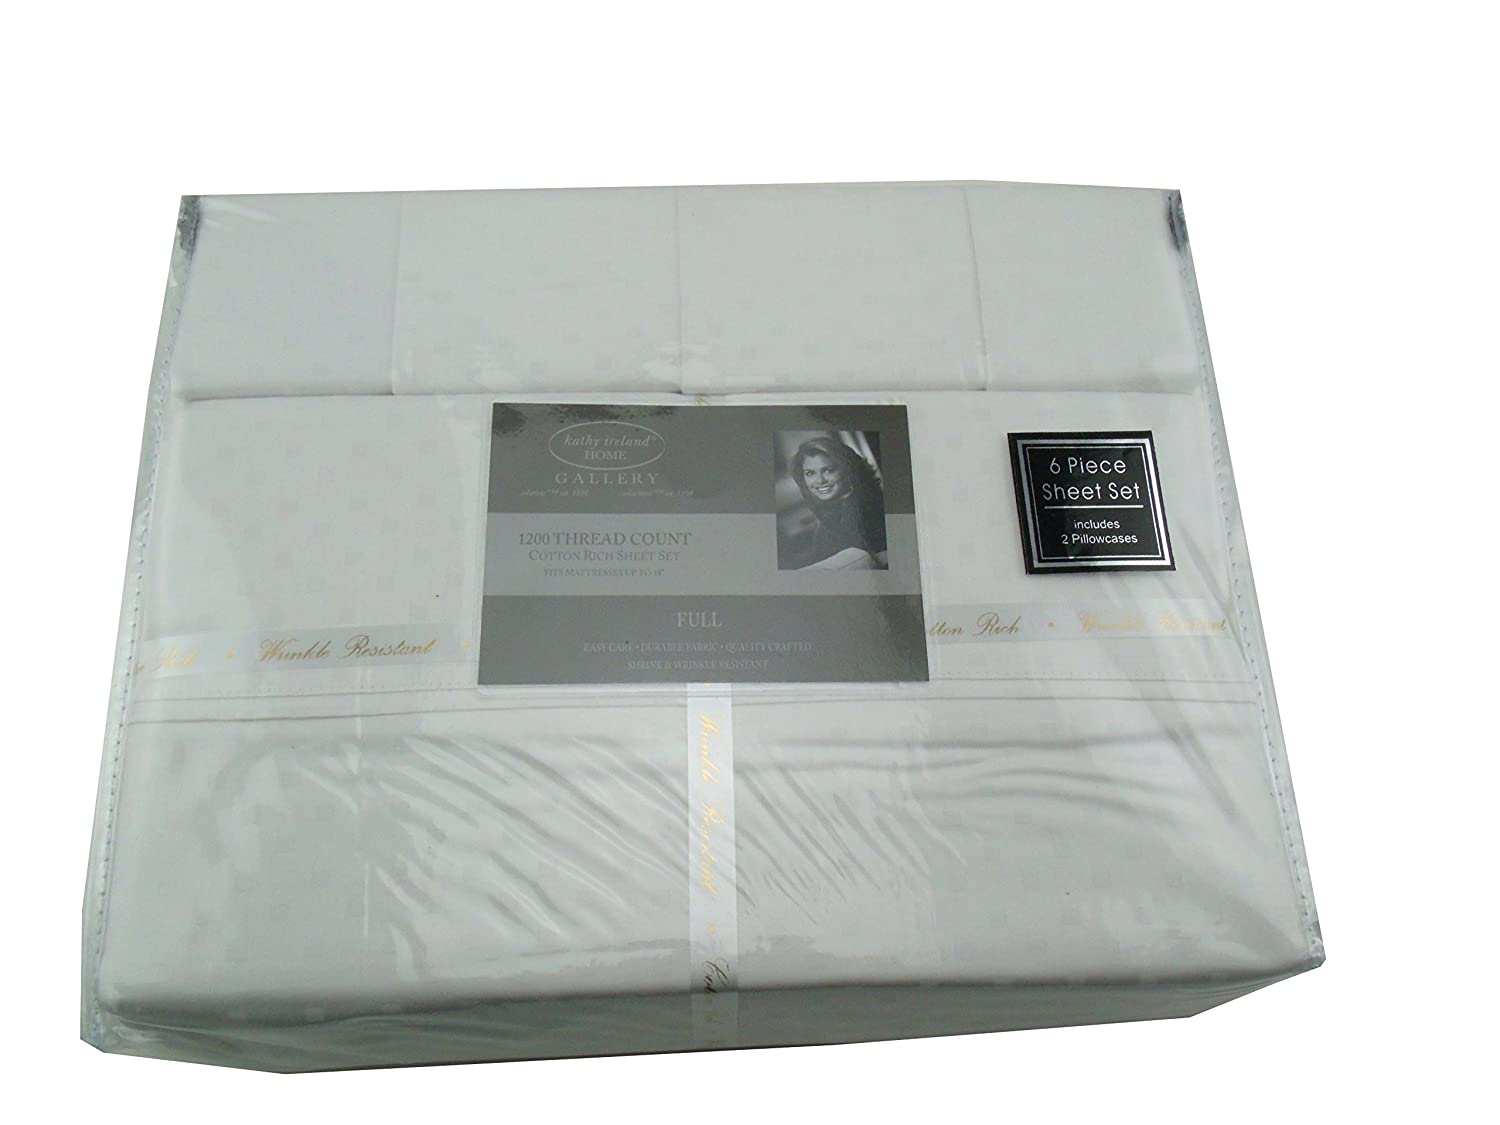 Kathy Ireland Home Gallery 6 Piece Full Deep Pocket 1200 Thread Count Sheet Set (White)